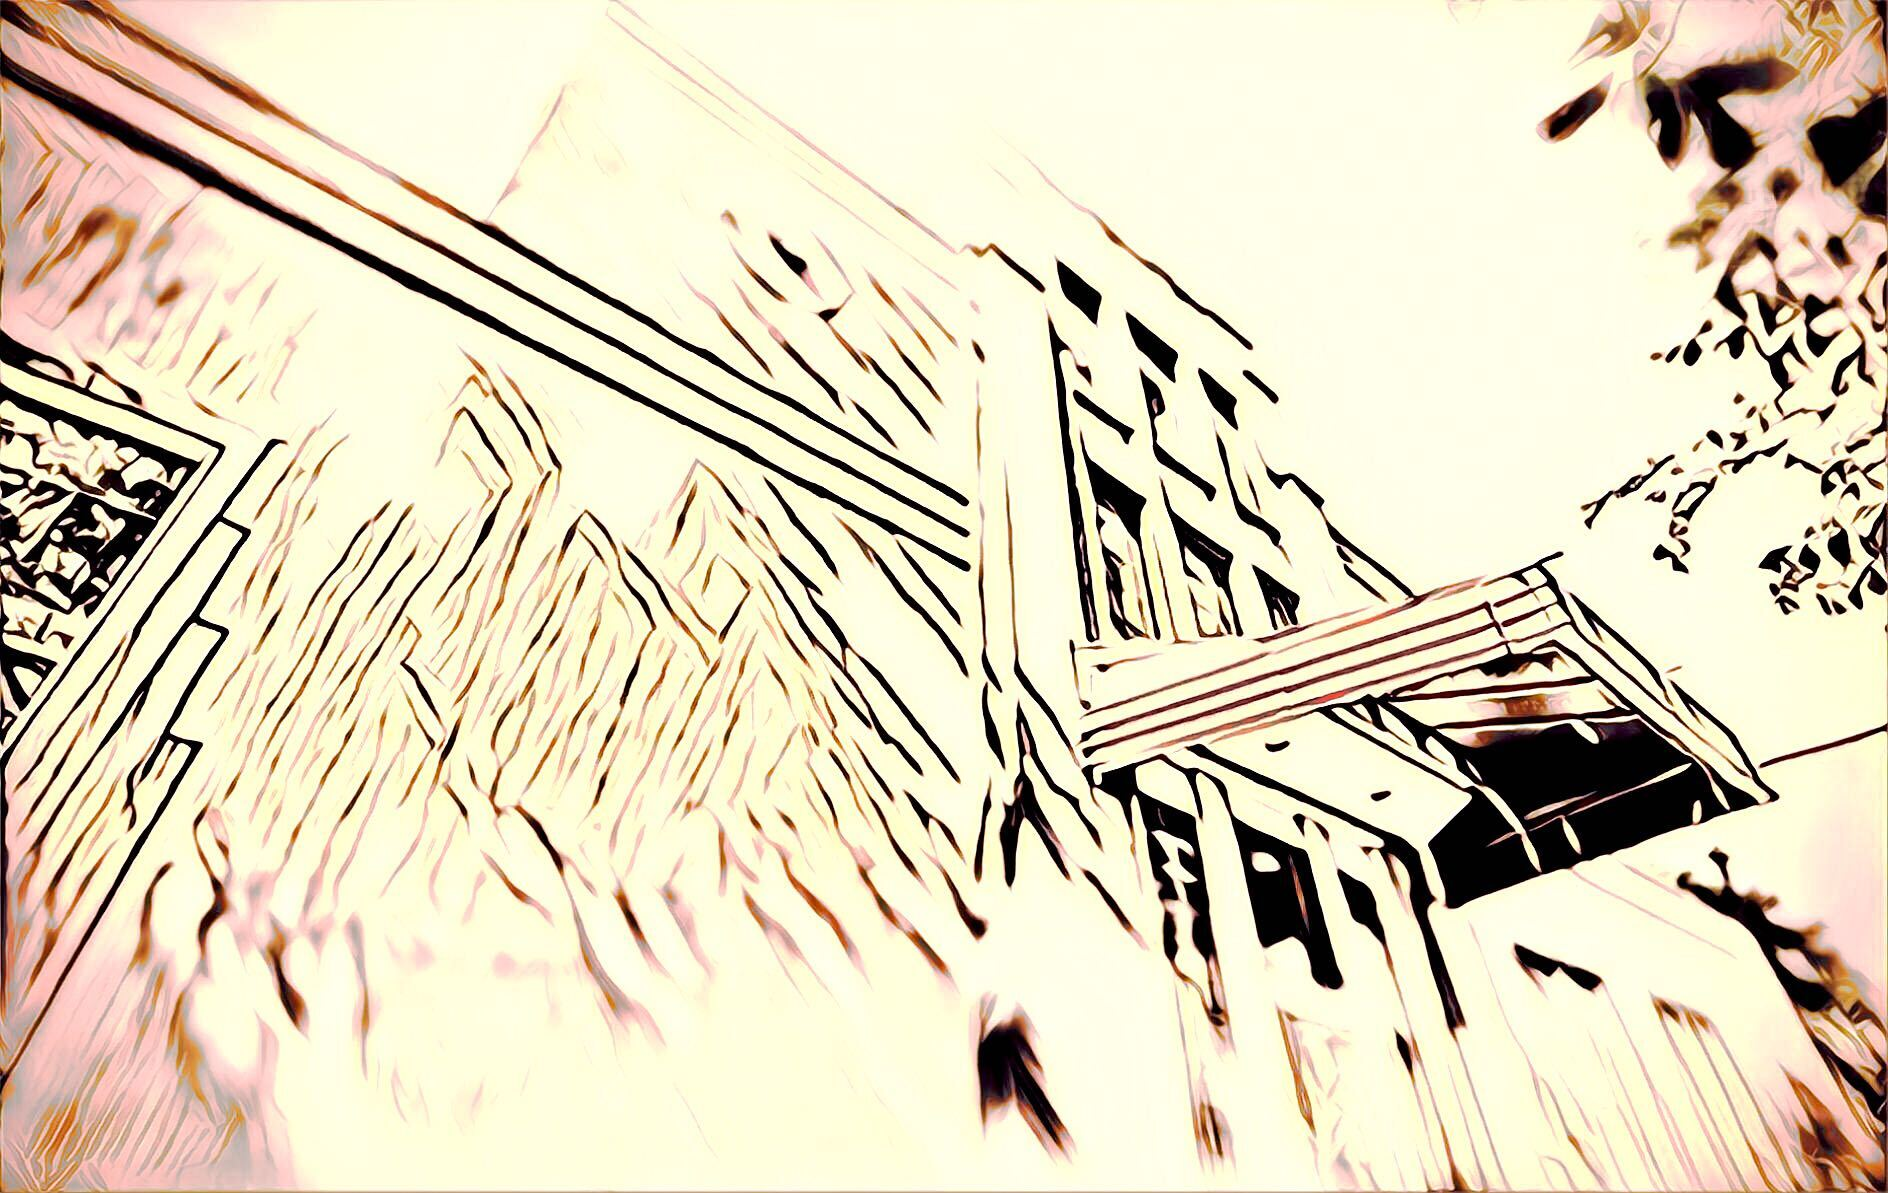 an art deco house rendered in artistic overexposed style